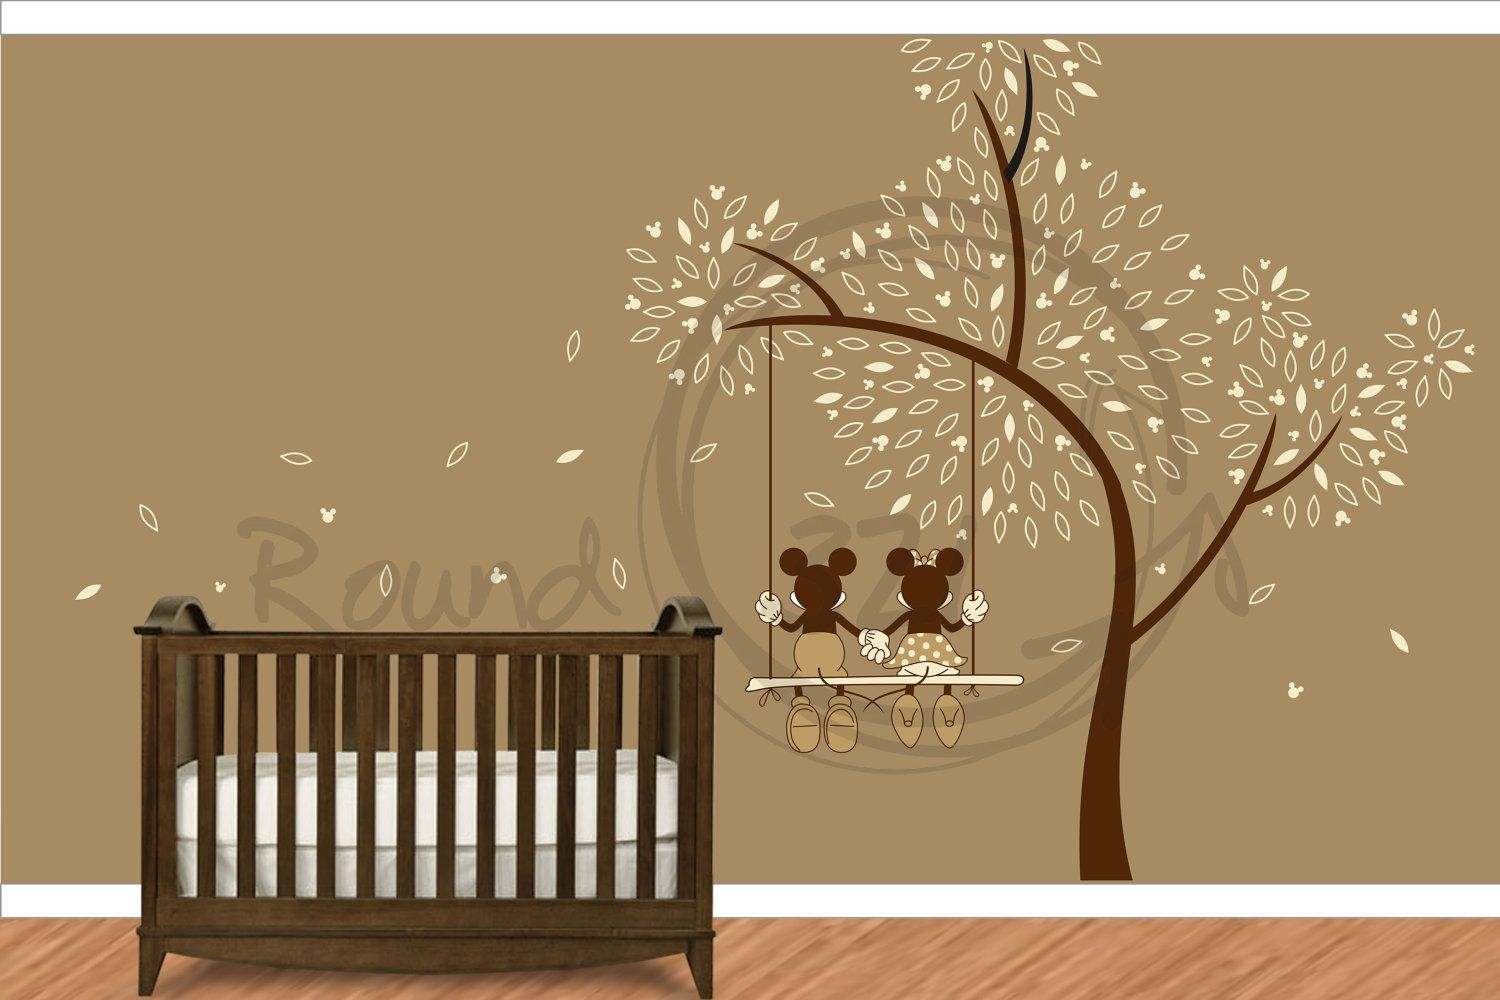 Mickey Mouse - Minnie Mouse Wall Decal - Wall Vinyl For Childrenu0027s and Infantsu0027 Playroom or Bedroom - Disney Decor. $150.00 via Etsy. & Mickey Mouse - Minnie Mouse Wall Decal - Wall Vinyl For Childrenu0027s ...